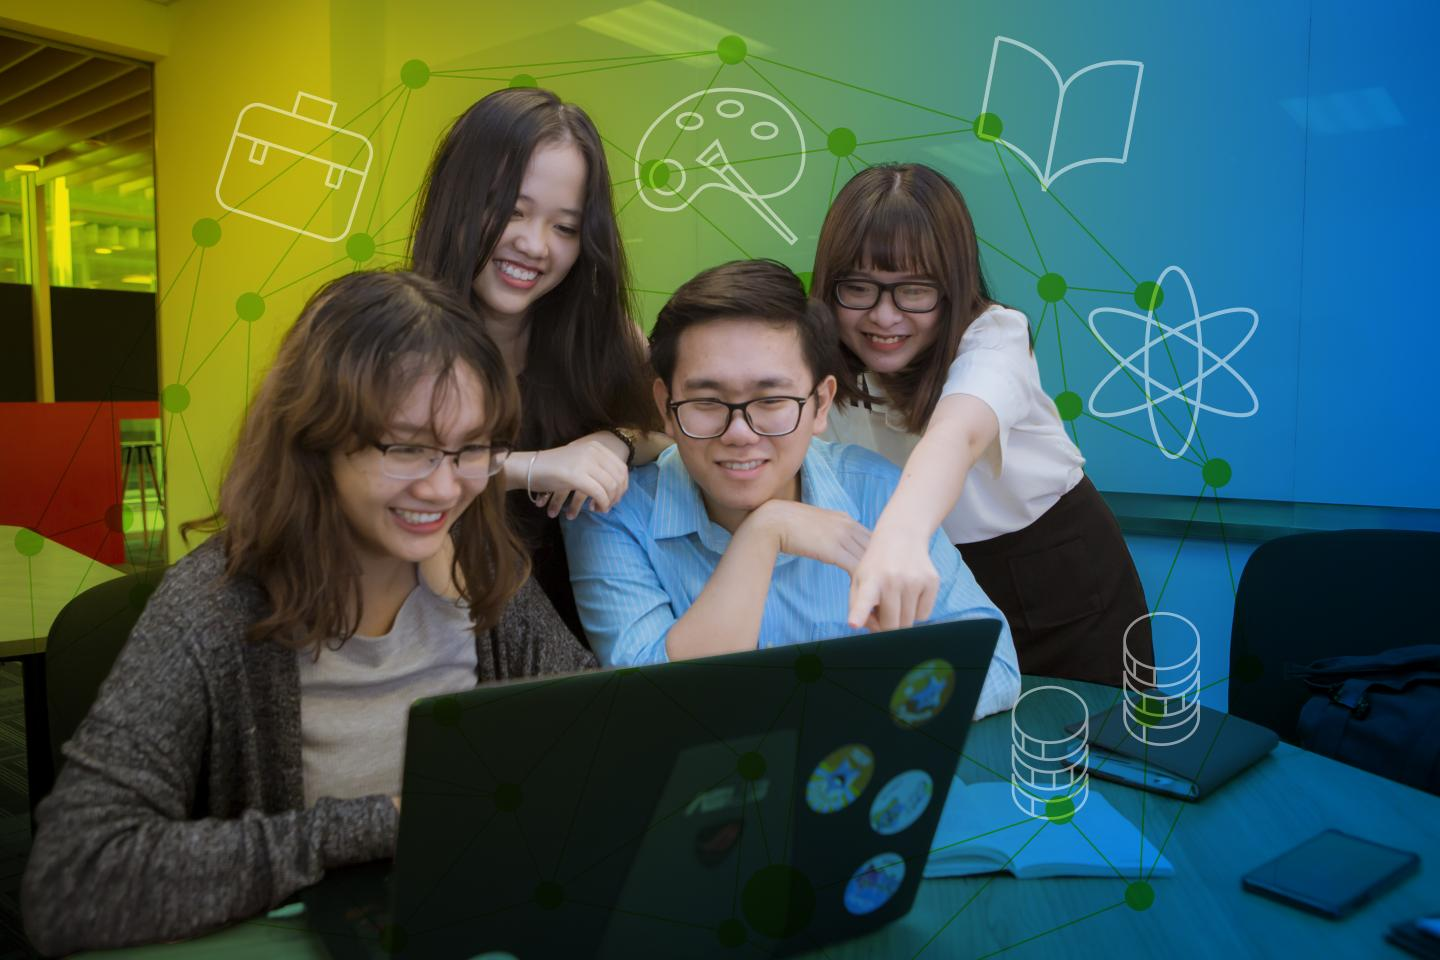 Four young people collaborate at a laptop computer in Viet Nam.